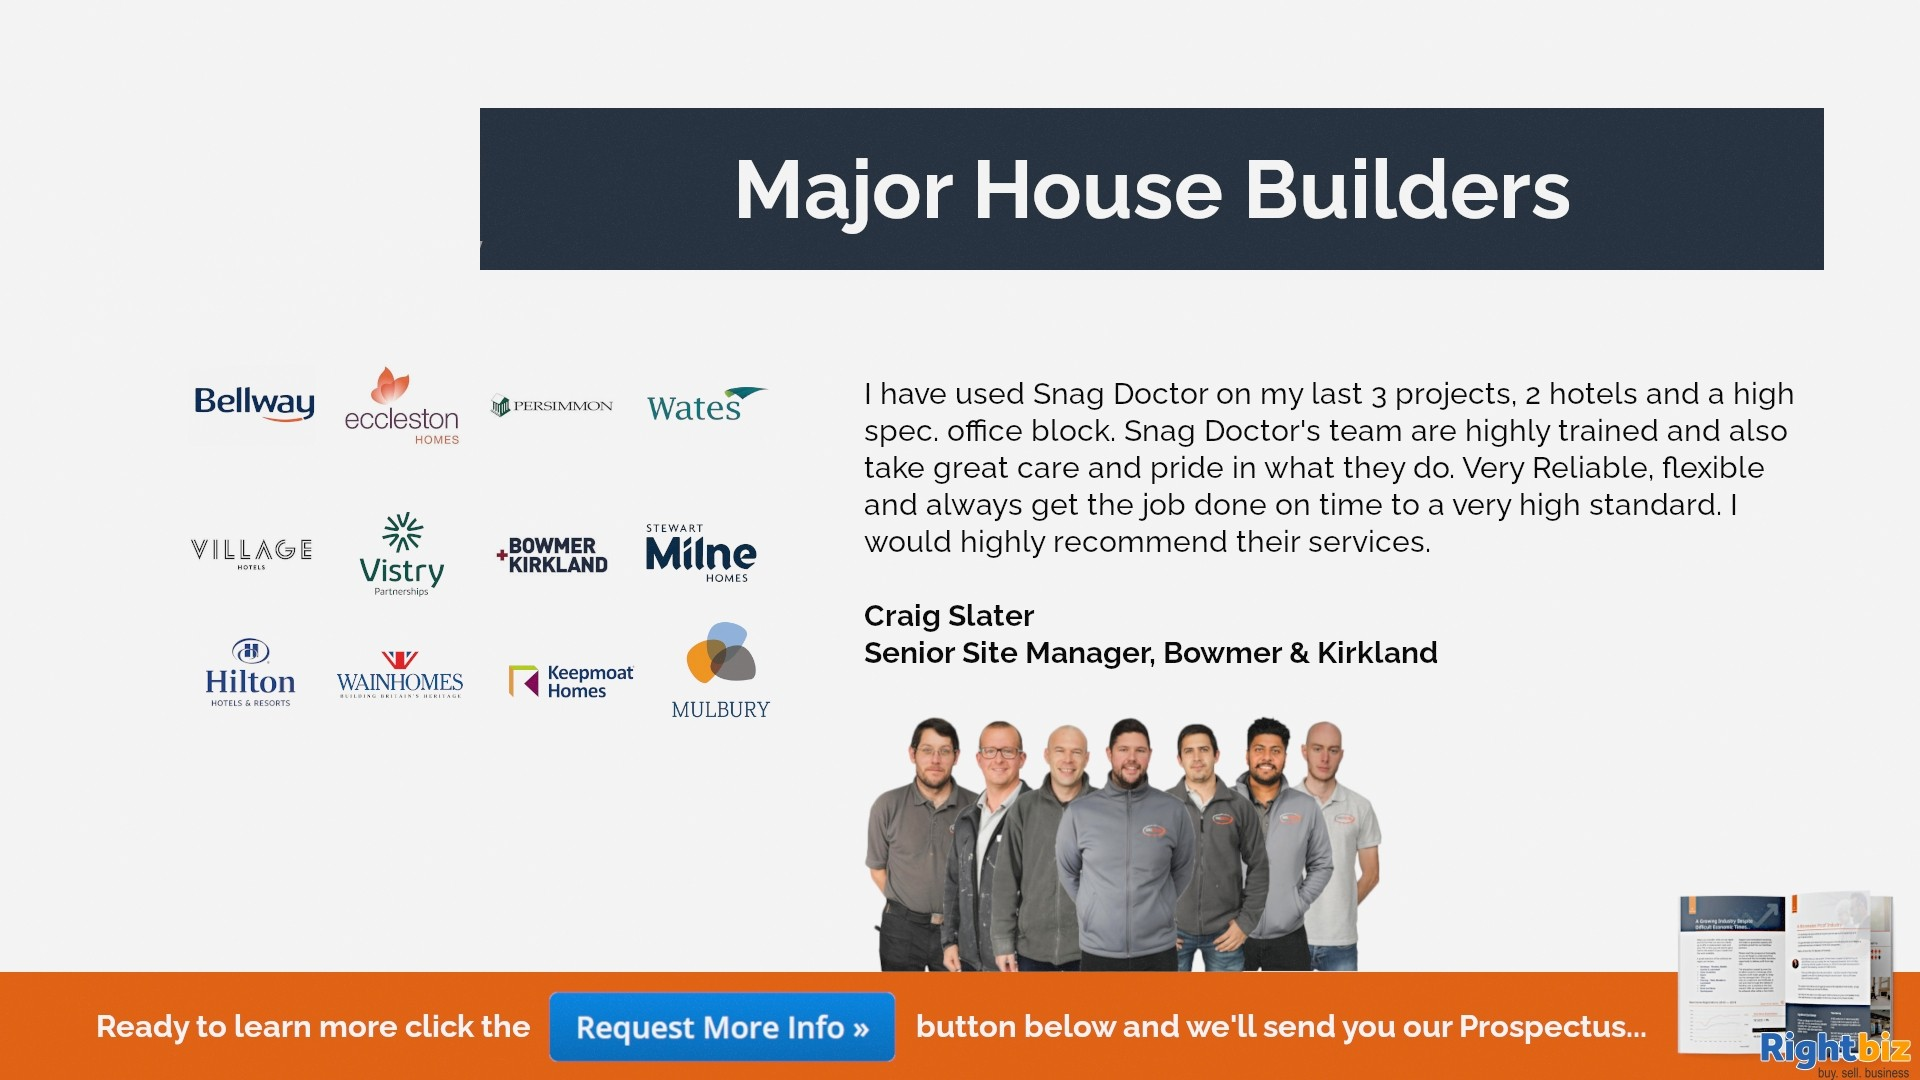 Snag Doctor 100% Govt Funded Franchise in Derry With Huge Demand from Major House Builders - Image 5